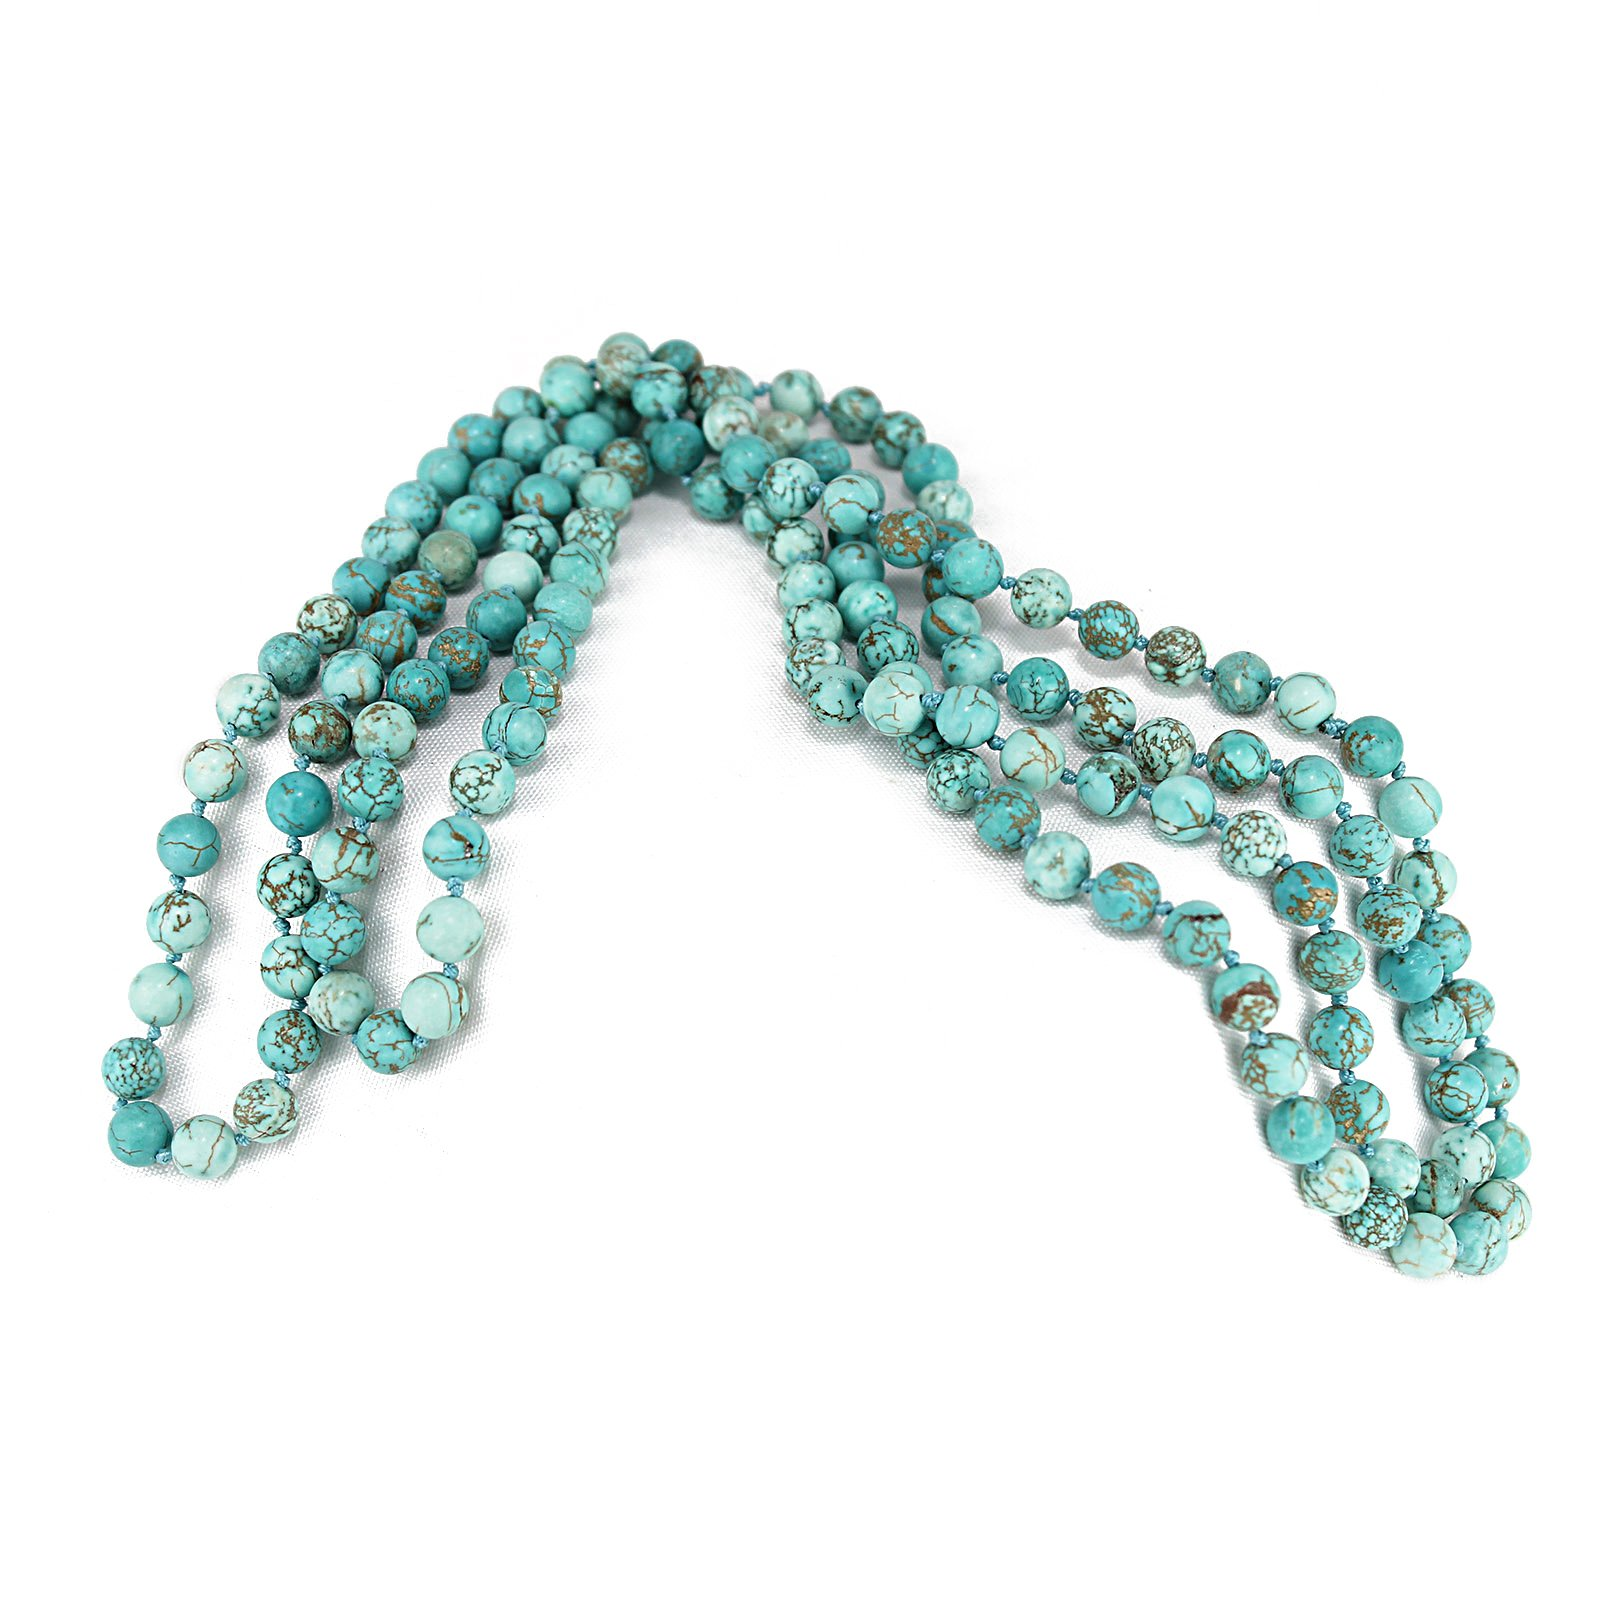 POMINA 8mm Semi Precious Stone Beaded Long Necklaces, 60 inches (Turquoise)